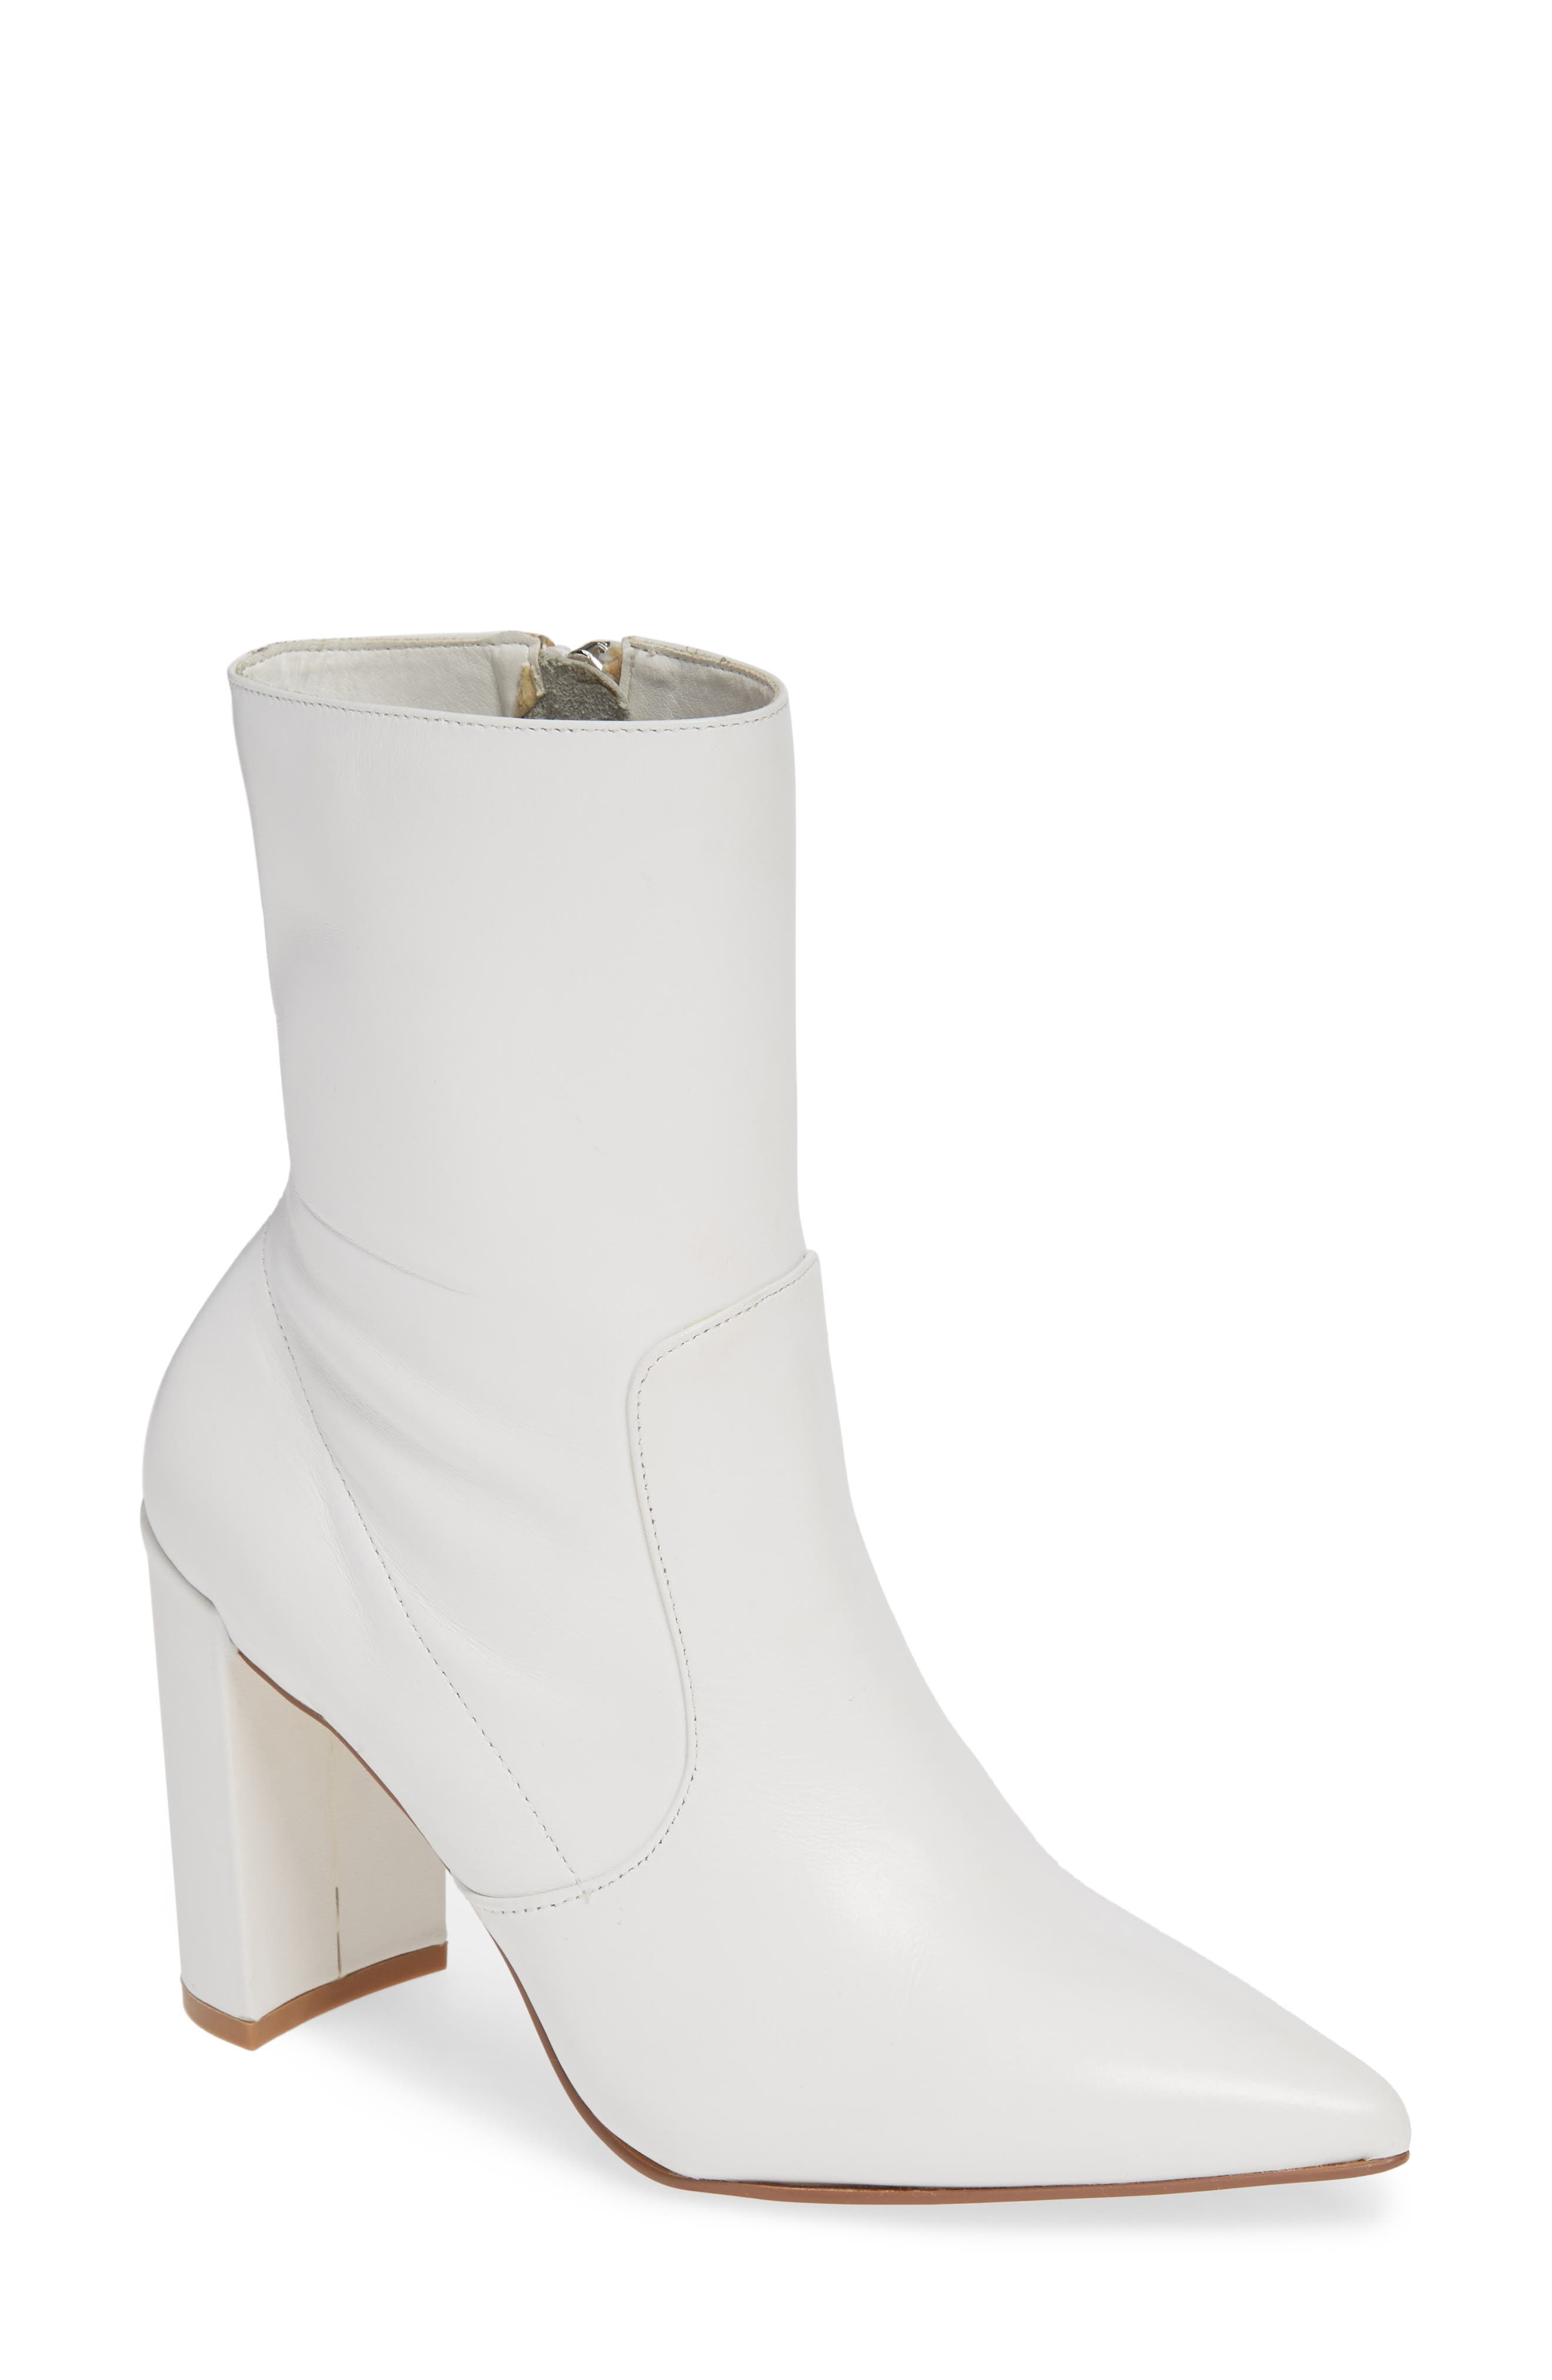 Chinese Laundry Radiant Bootie, White